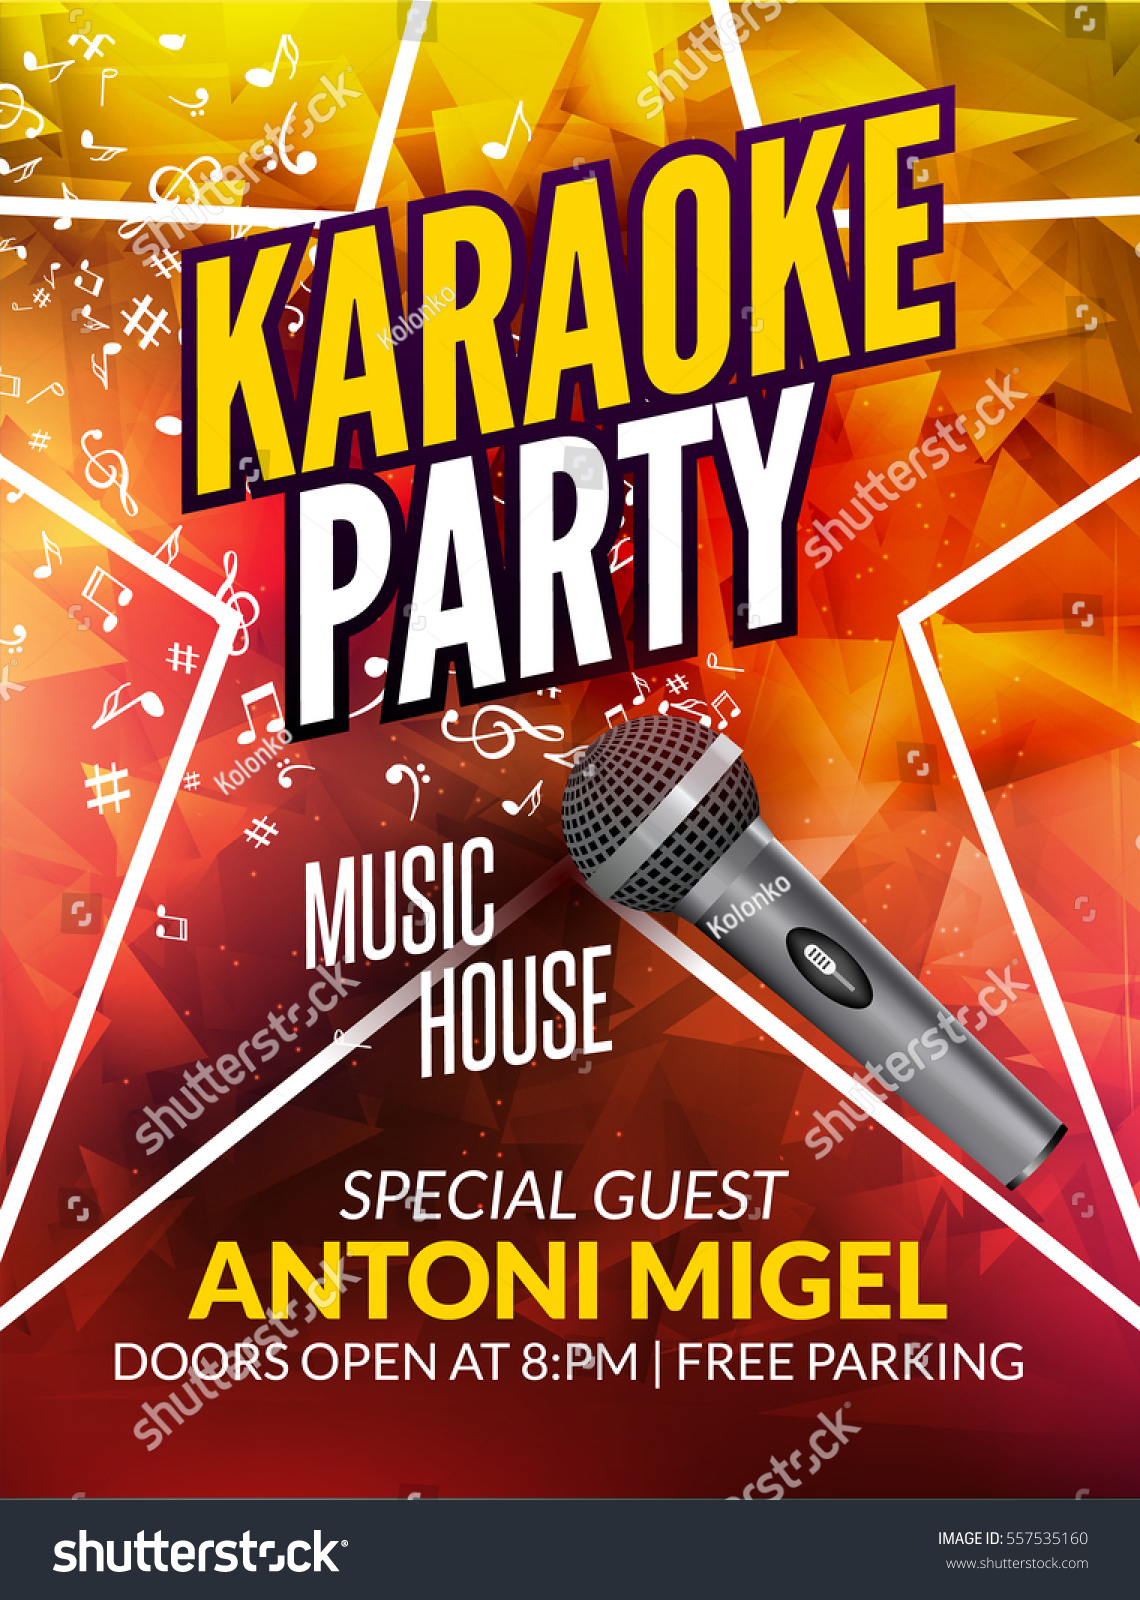 karaoke party invitation poster design template karaoke night flyer design music voice concert